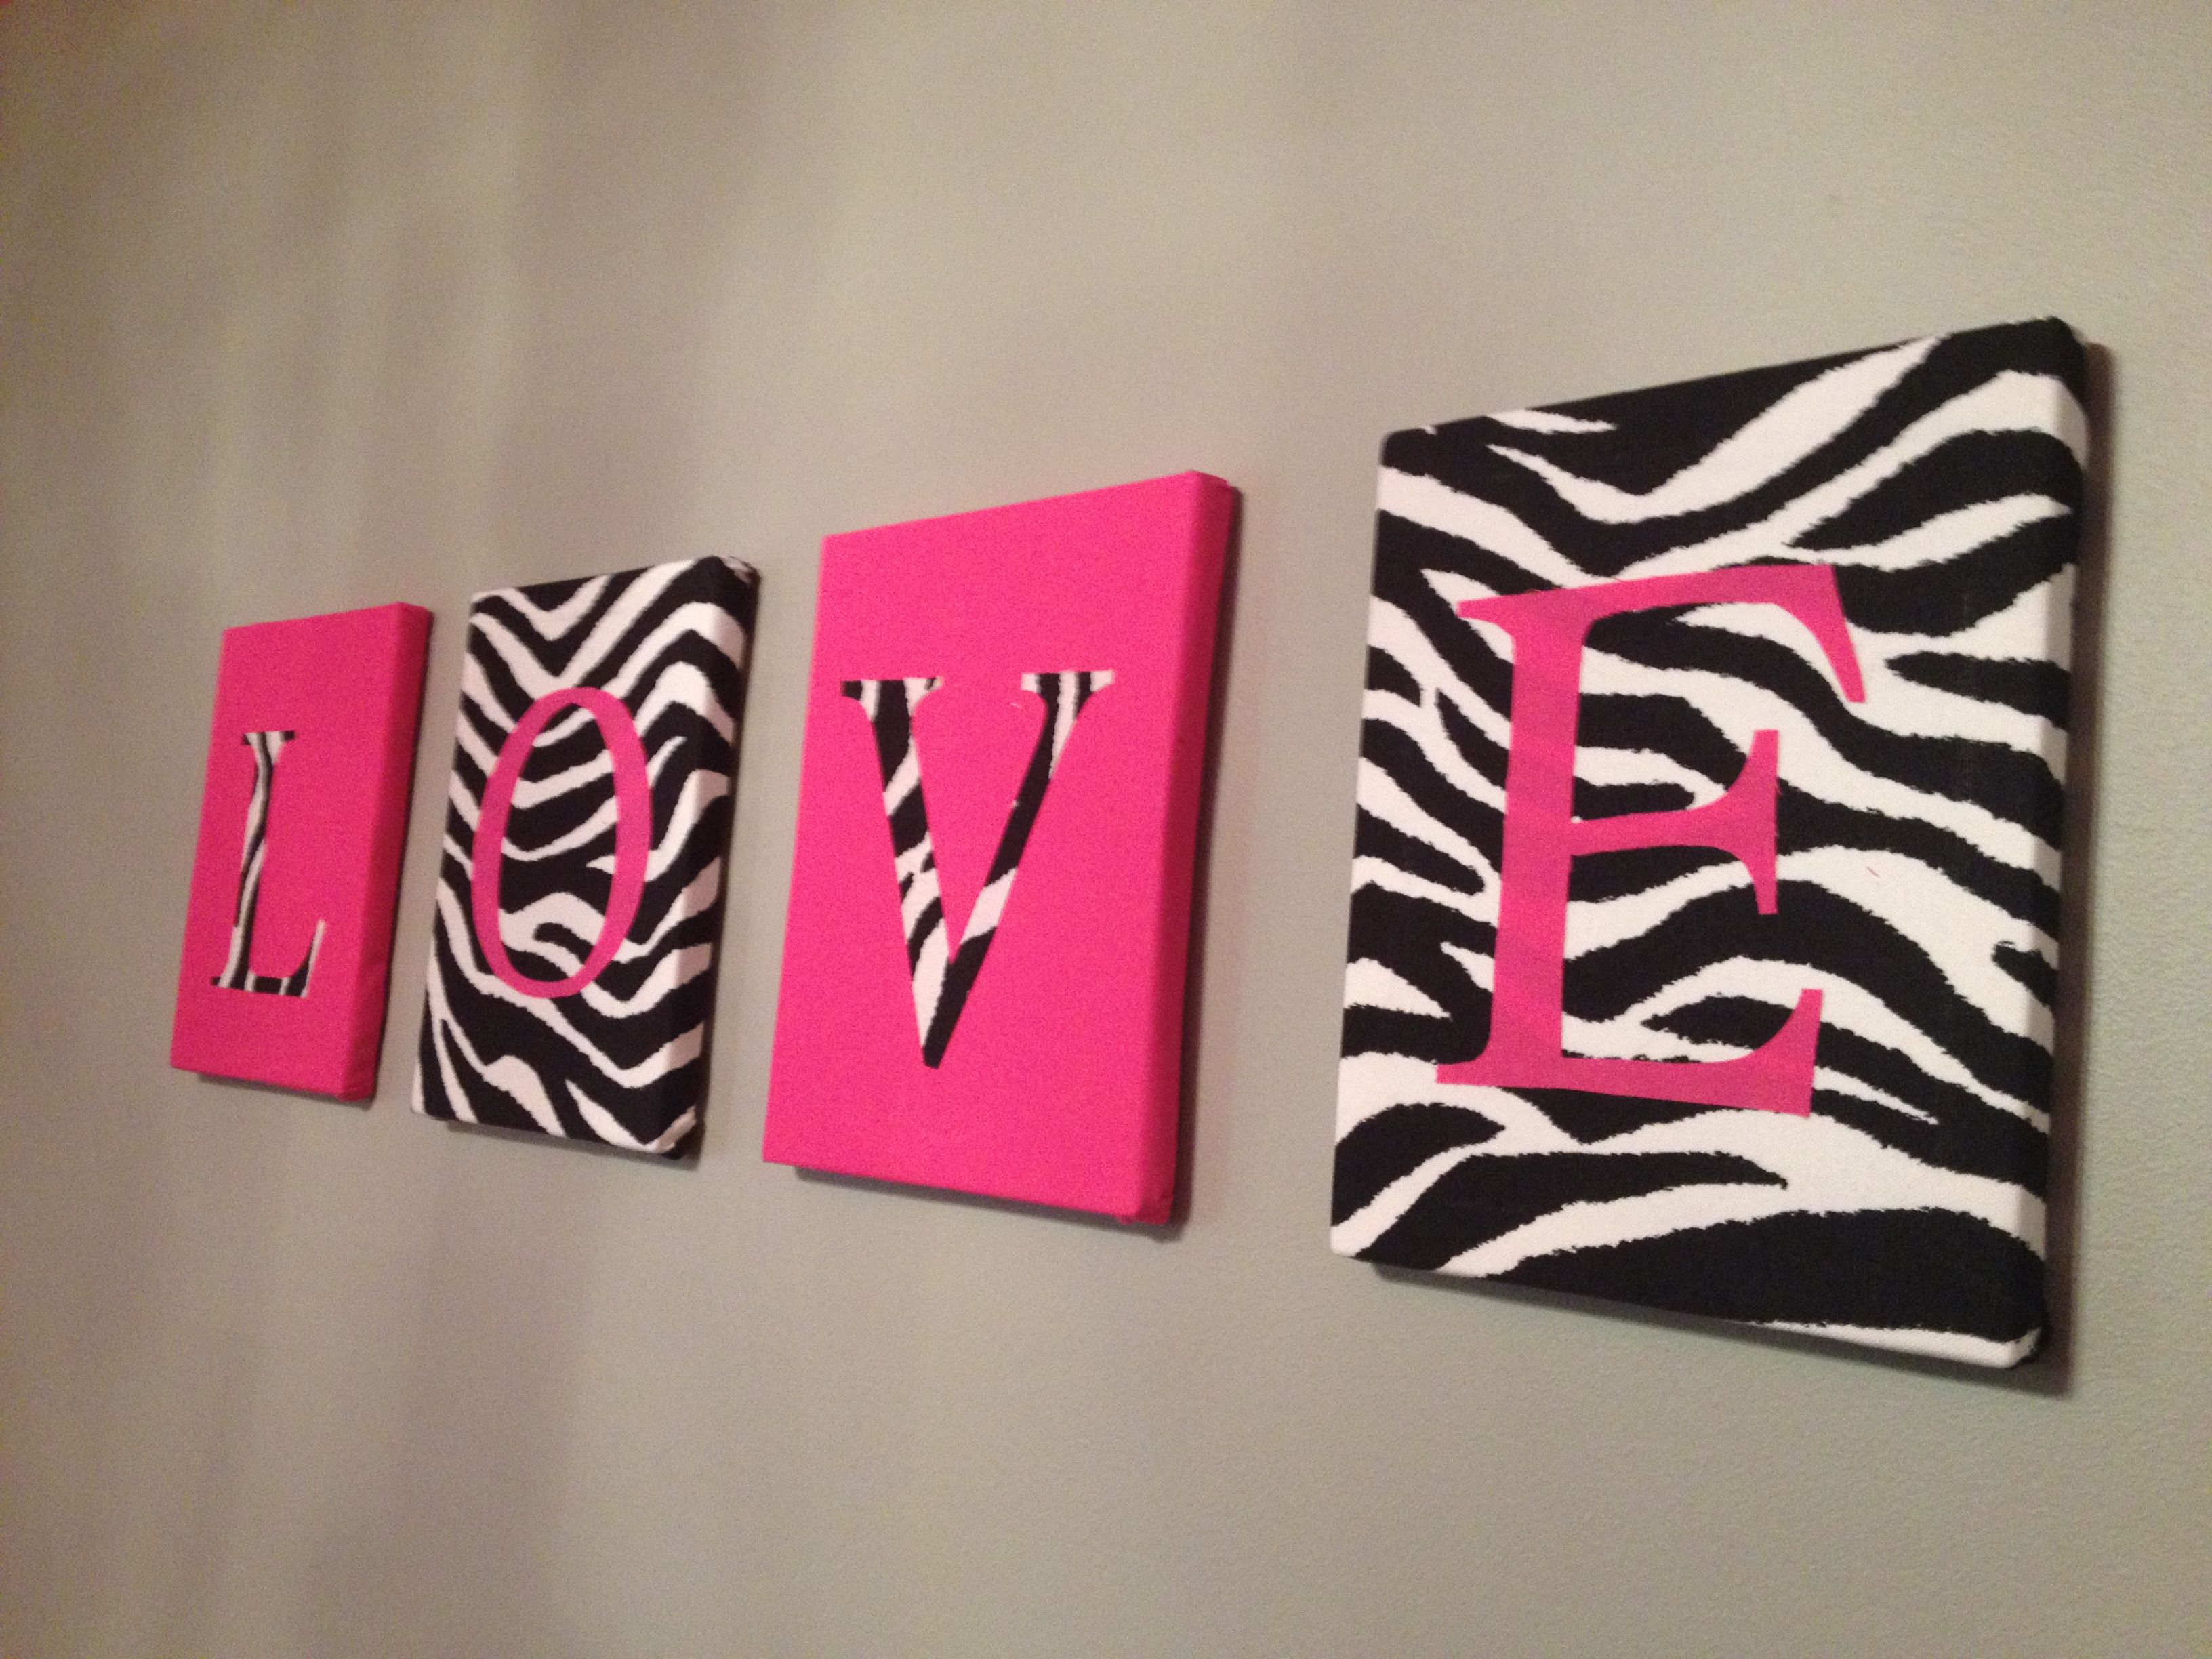 Pin By Melissa Dawn On Diy Home Decor Zebra Room Zebra Bedroom Zebra Print Bedroom